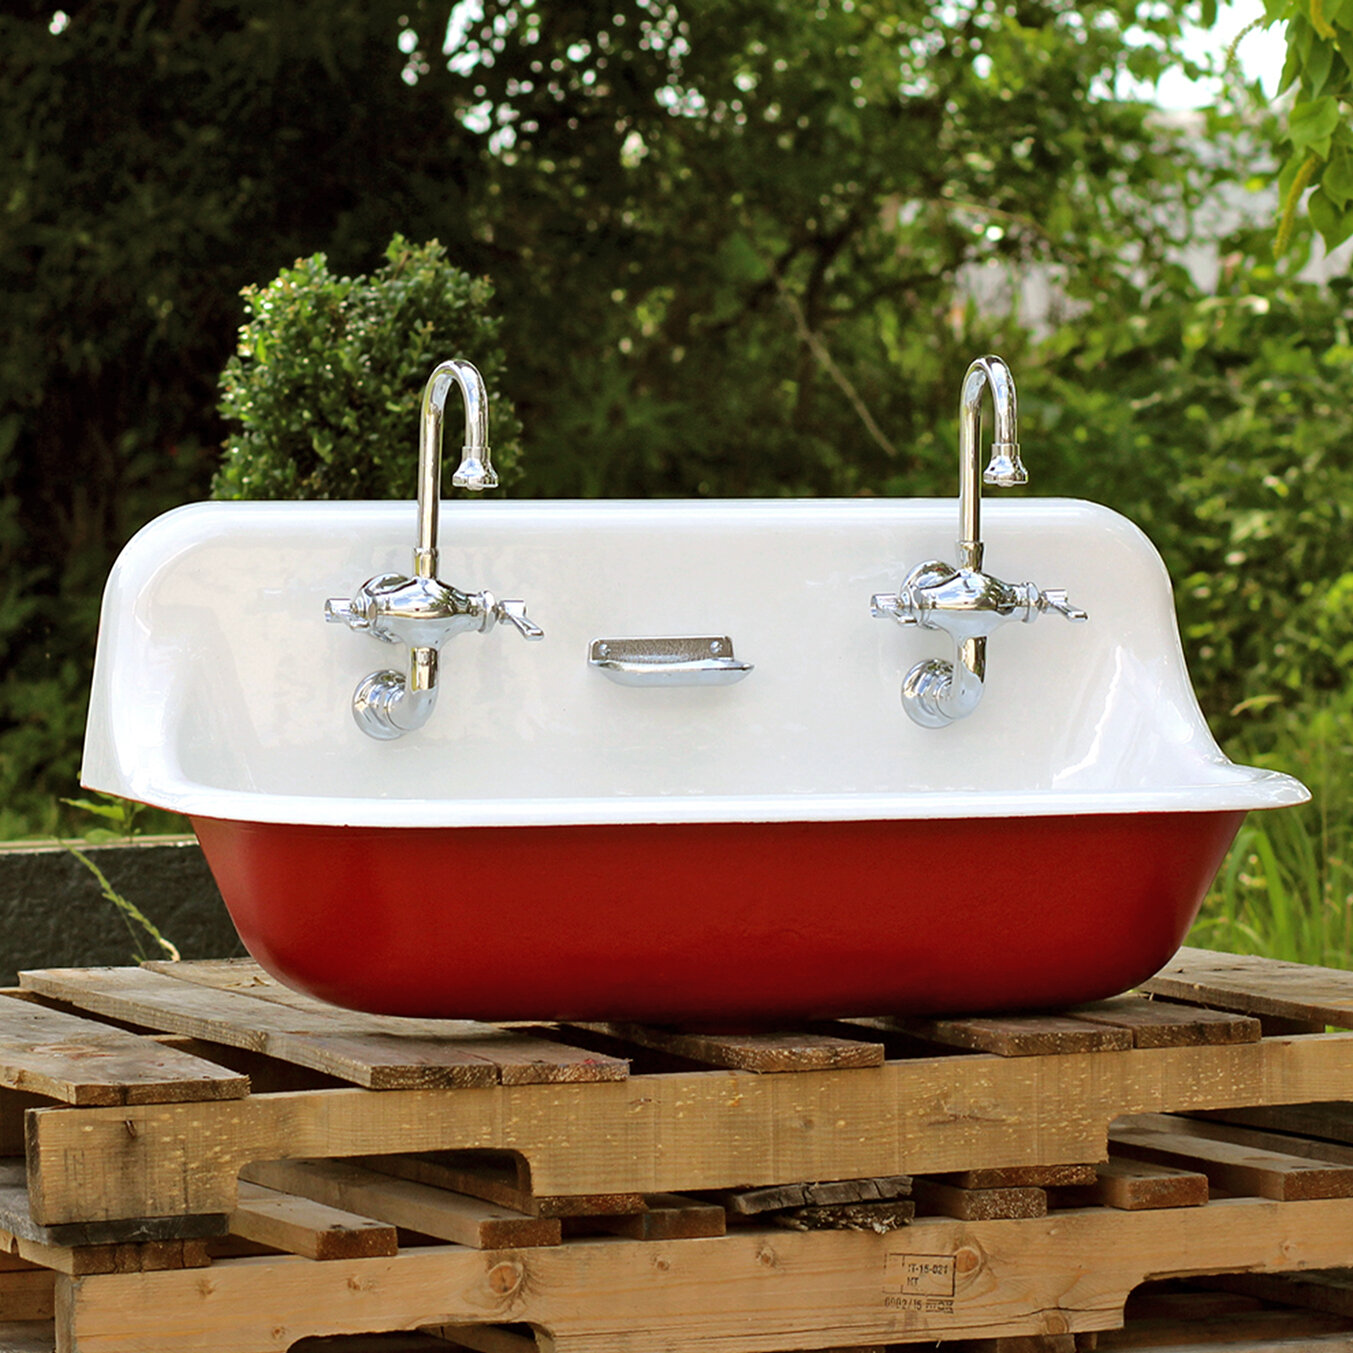 K 3200 0 36 Ir High Back Antique Inspired Kohler Farm Sink Incarnadine Red Cast Iron Porcelain Trough Package